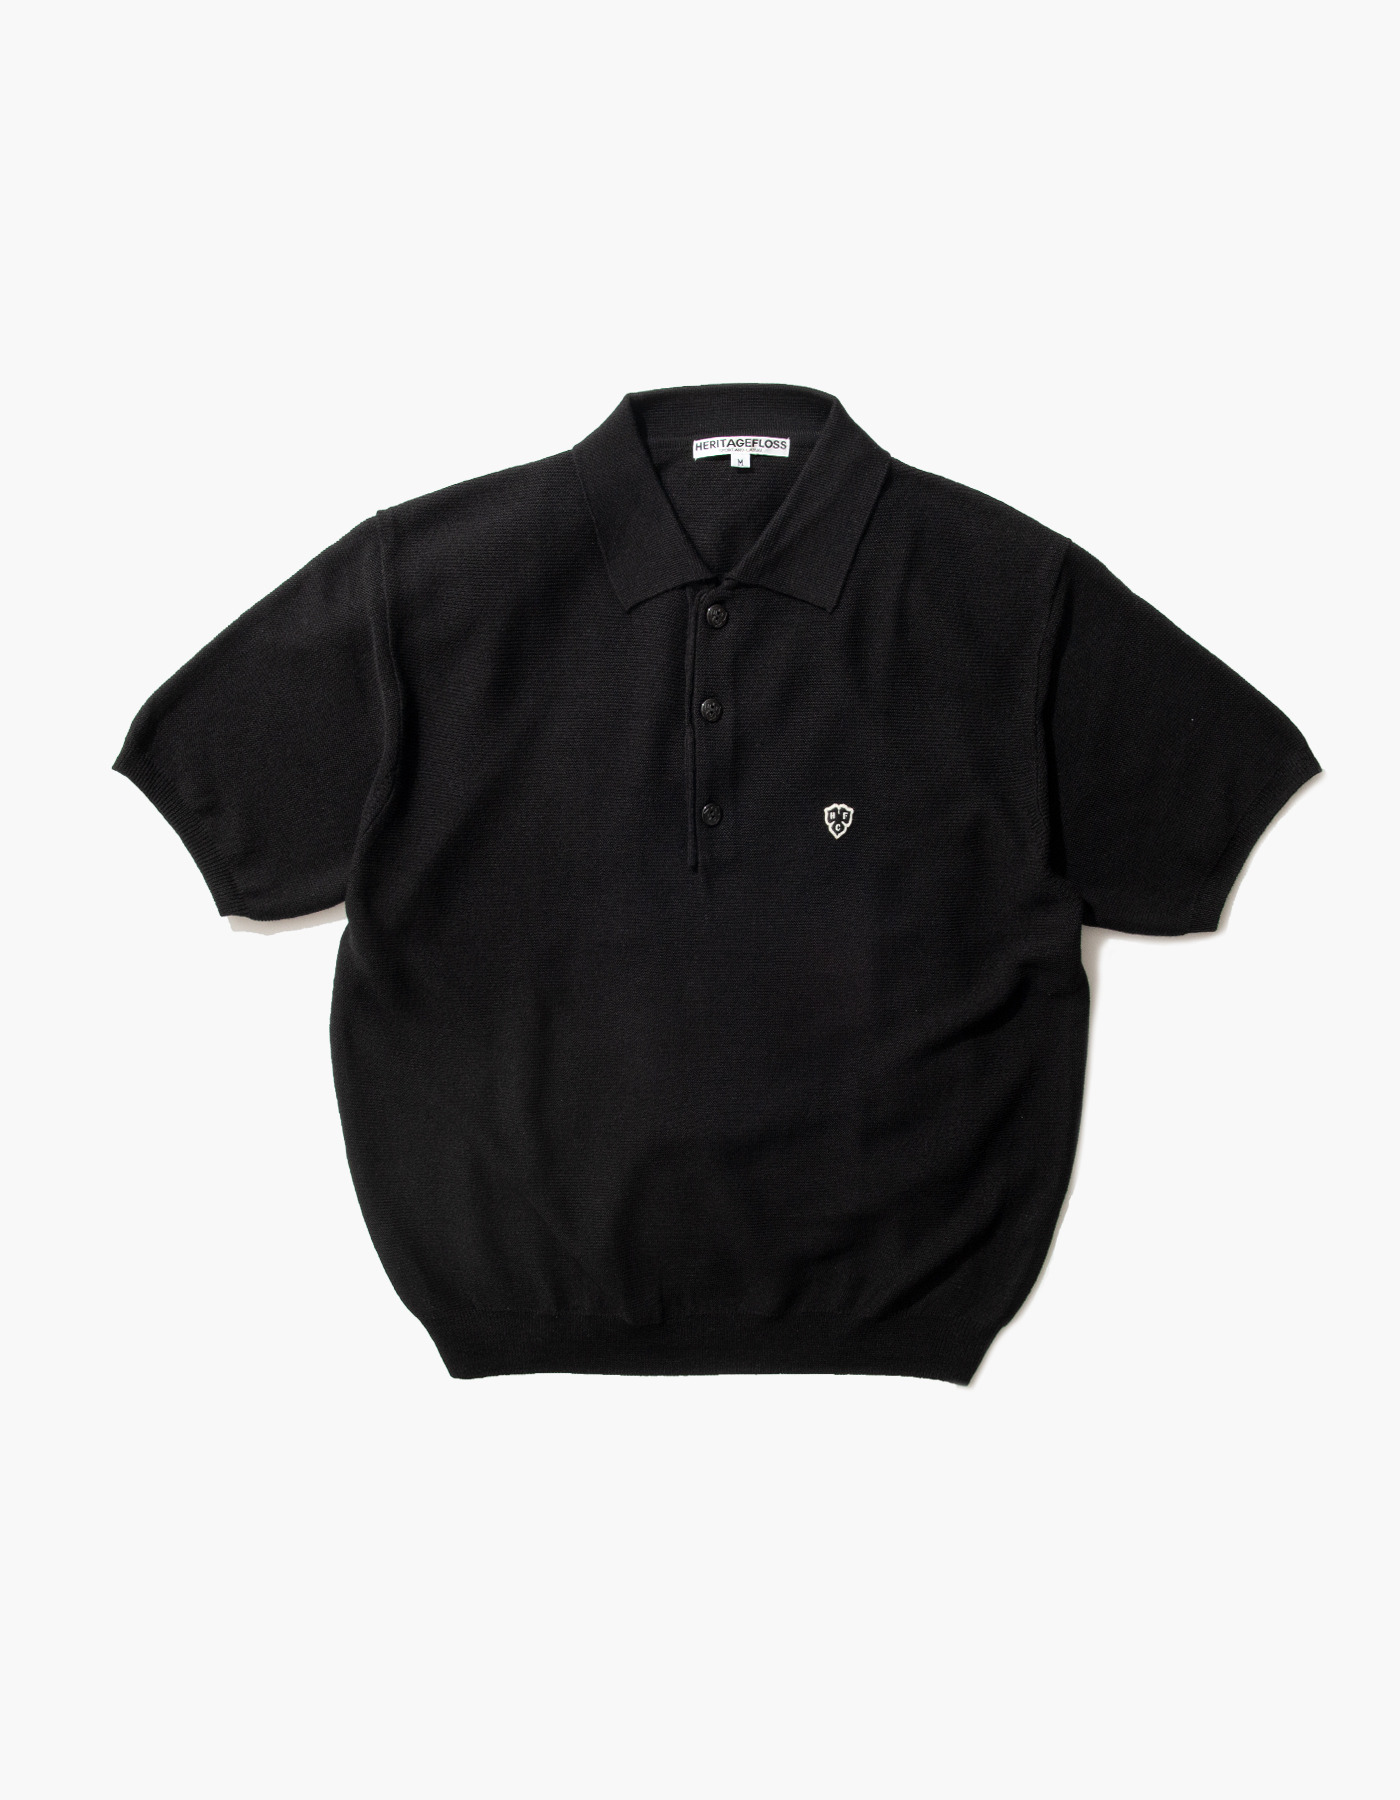 HFC CLOVER POLO SHIRTS / BLACK